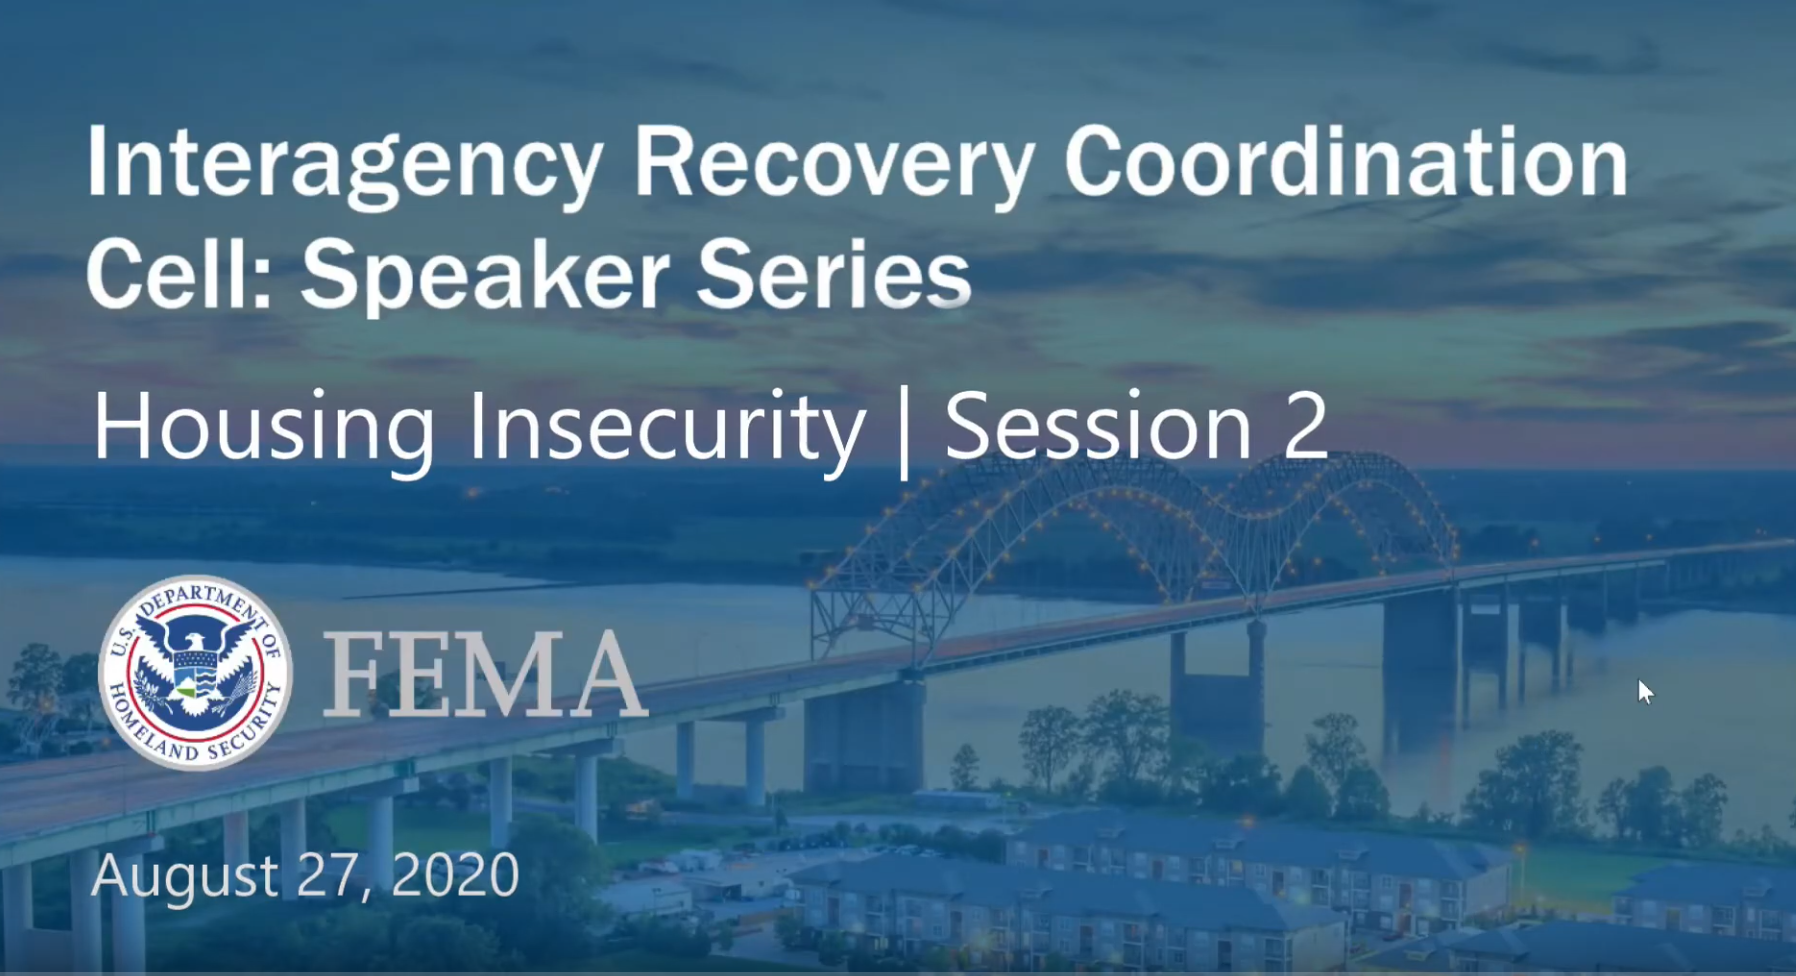 Interagency Recovery Coordination Speaker Series: Housing Inequity